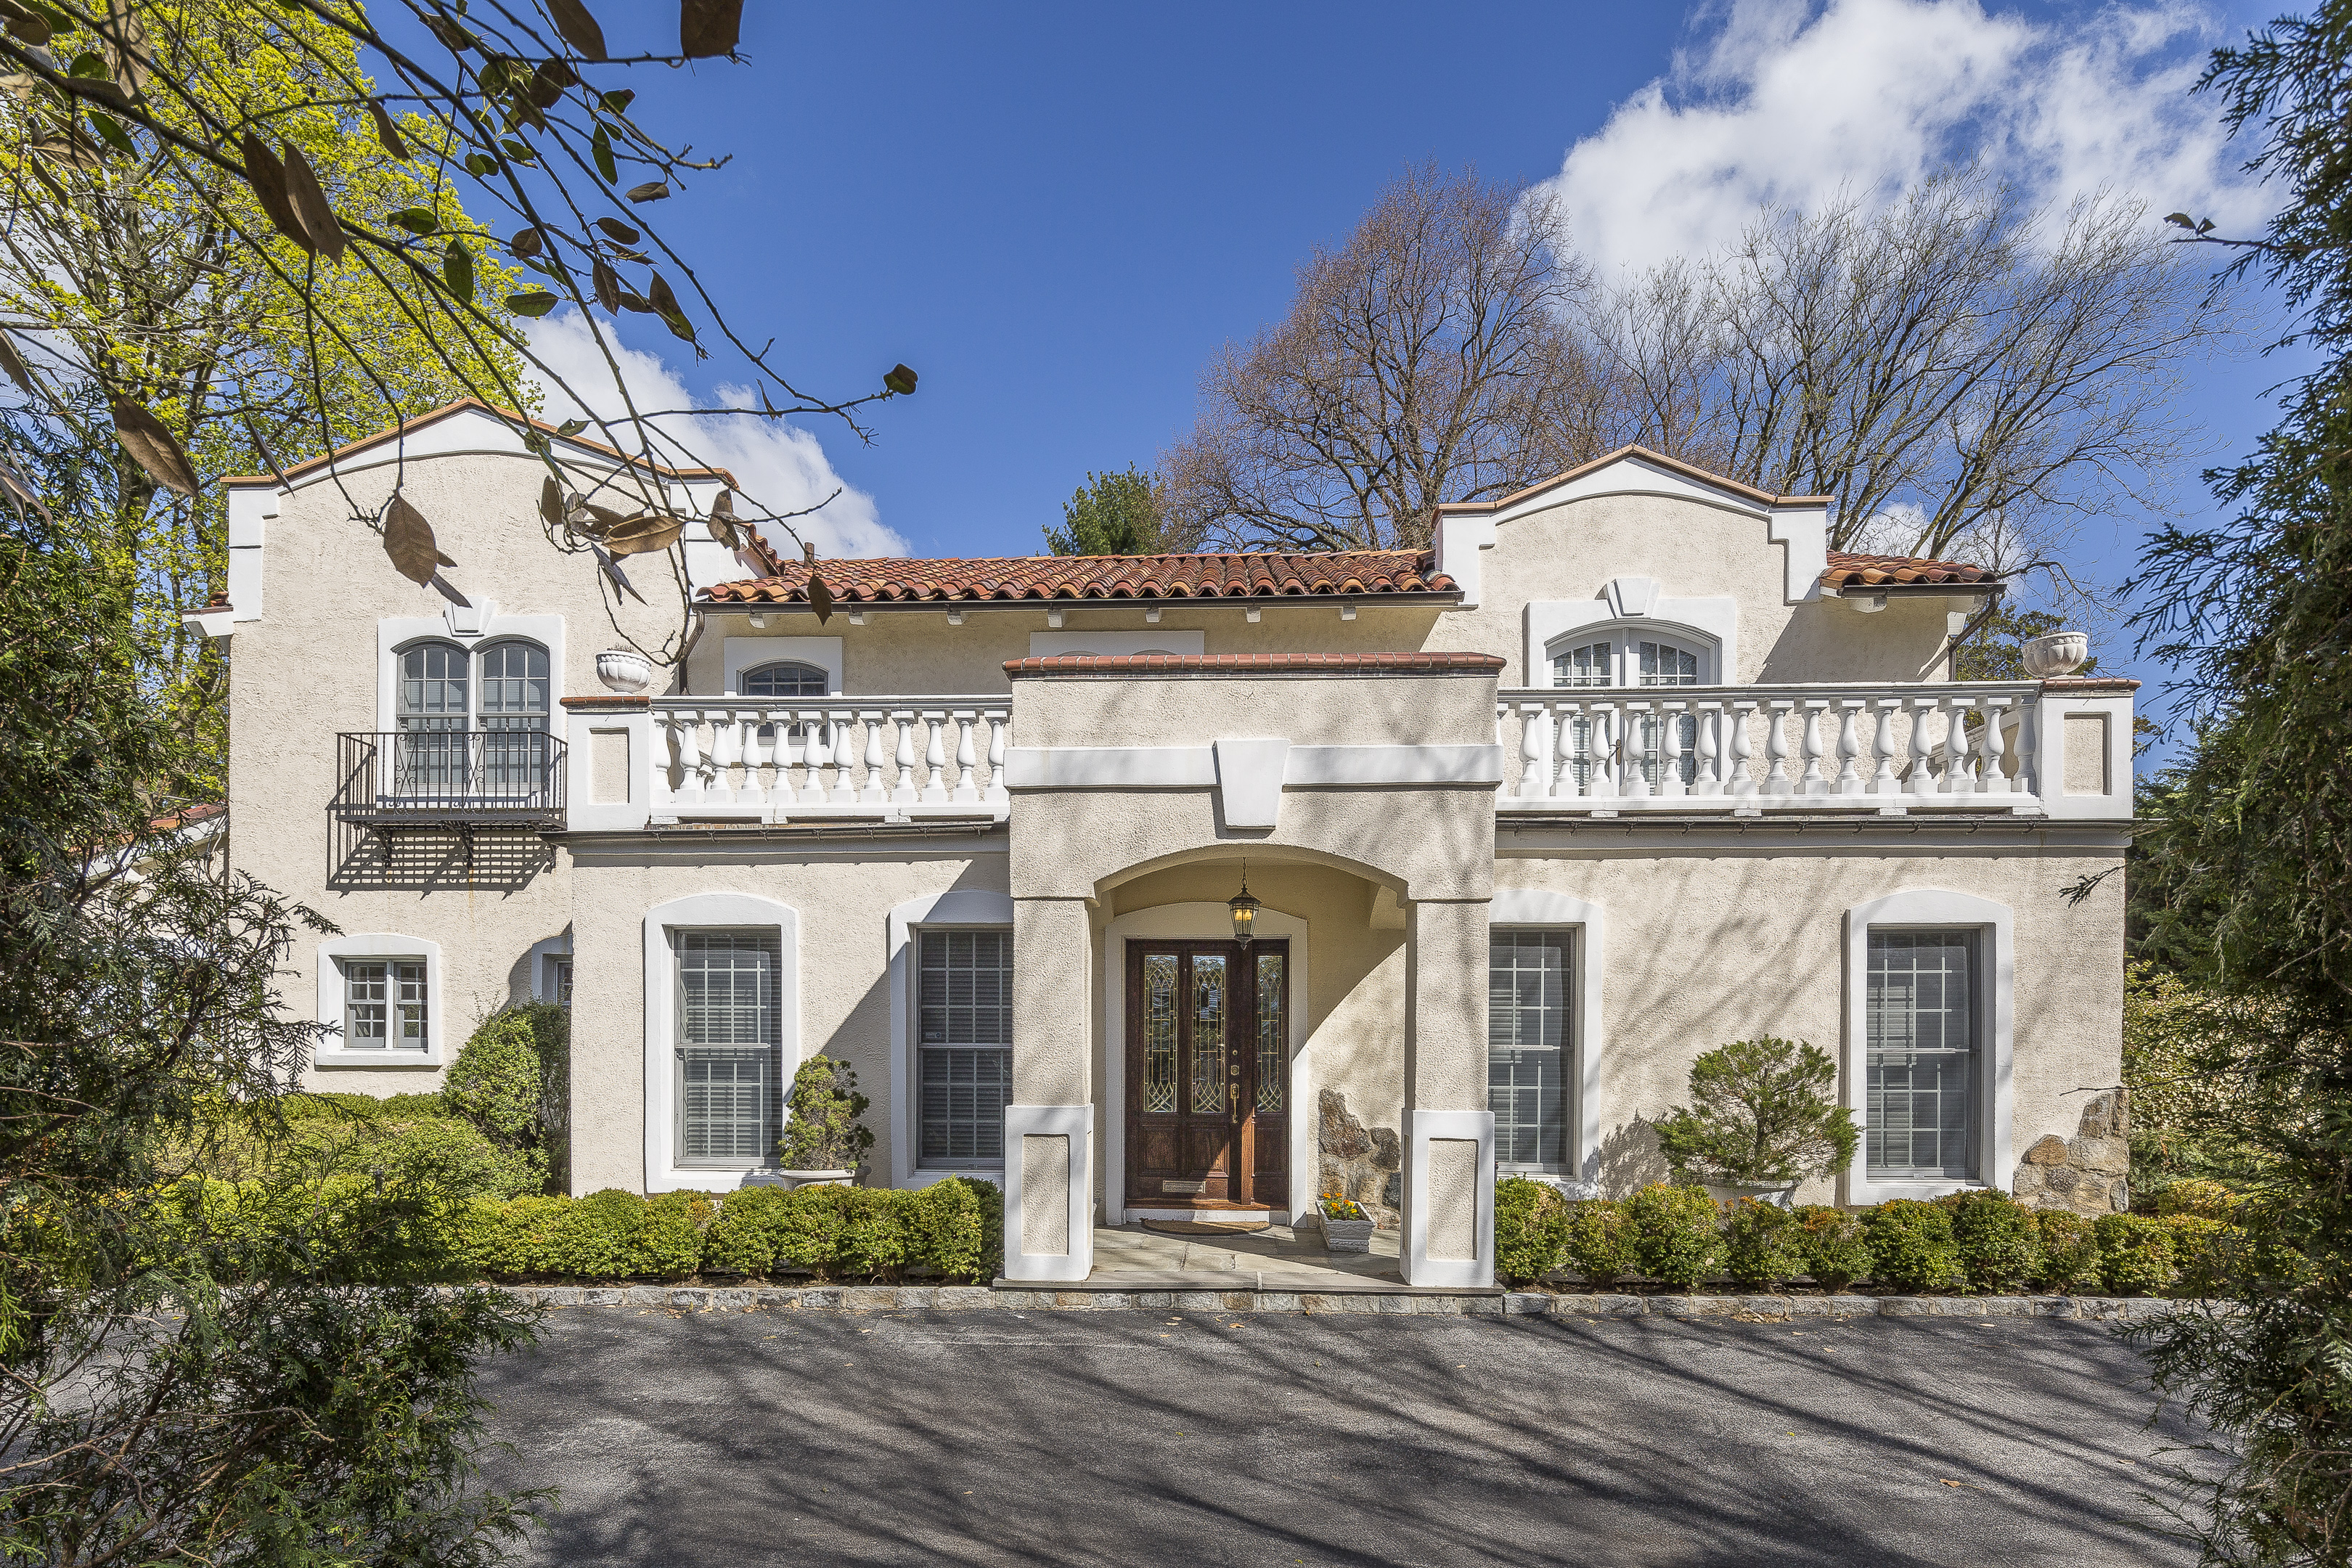 Single Family Home for Sale at Village Mediterranean 345 Pondfield Road Bronxville, New York 10708 United States